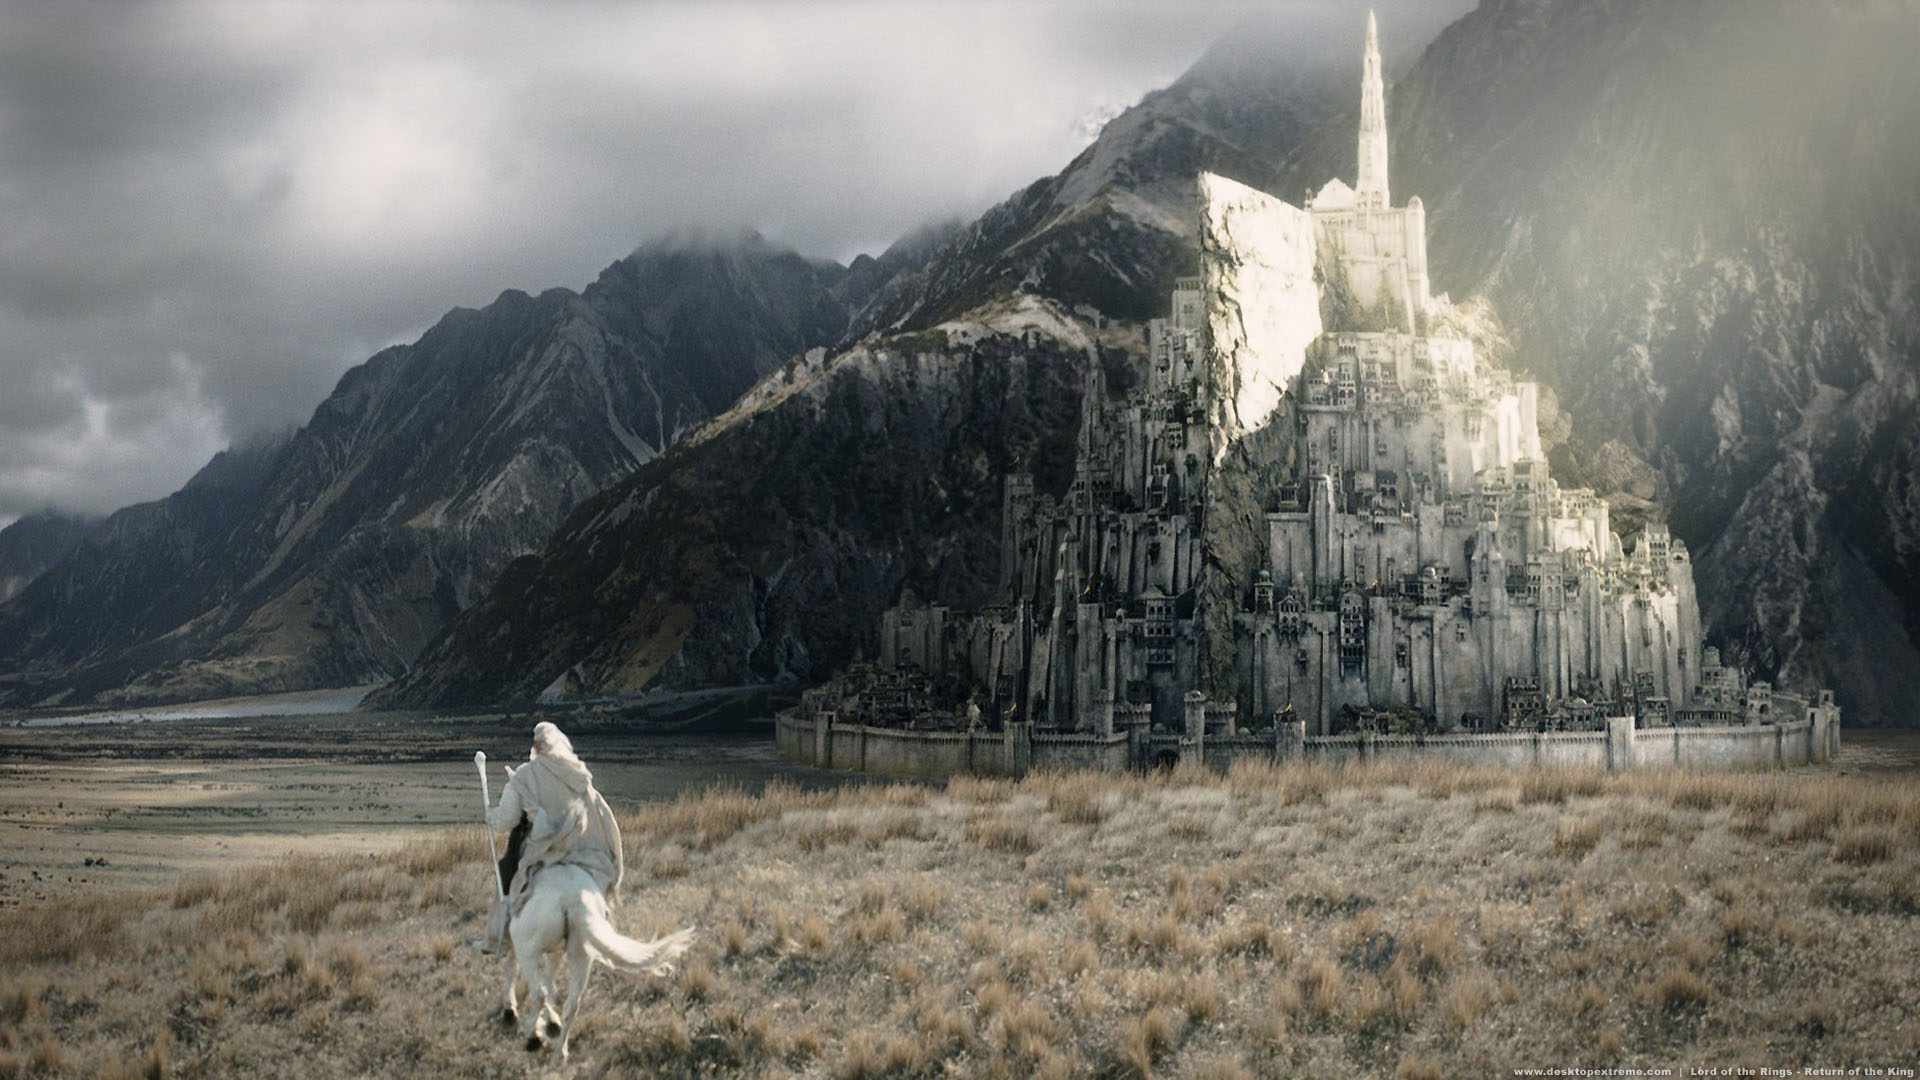 The Lord of the Rings Res: 1920x1080 HD / Size:308kb. Views: 197188